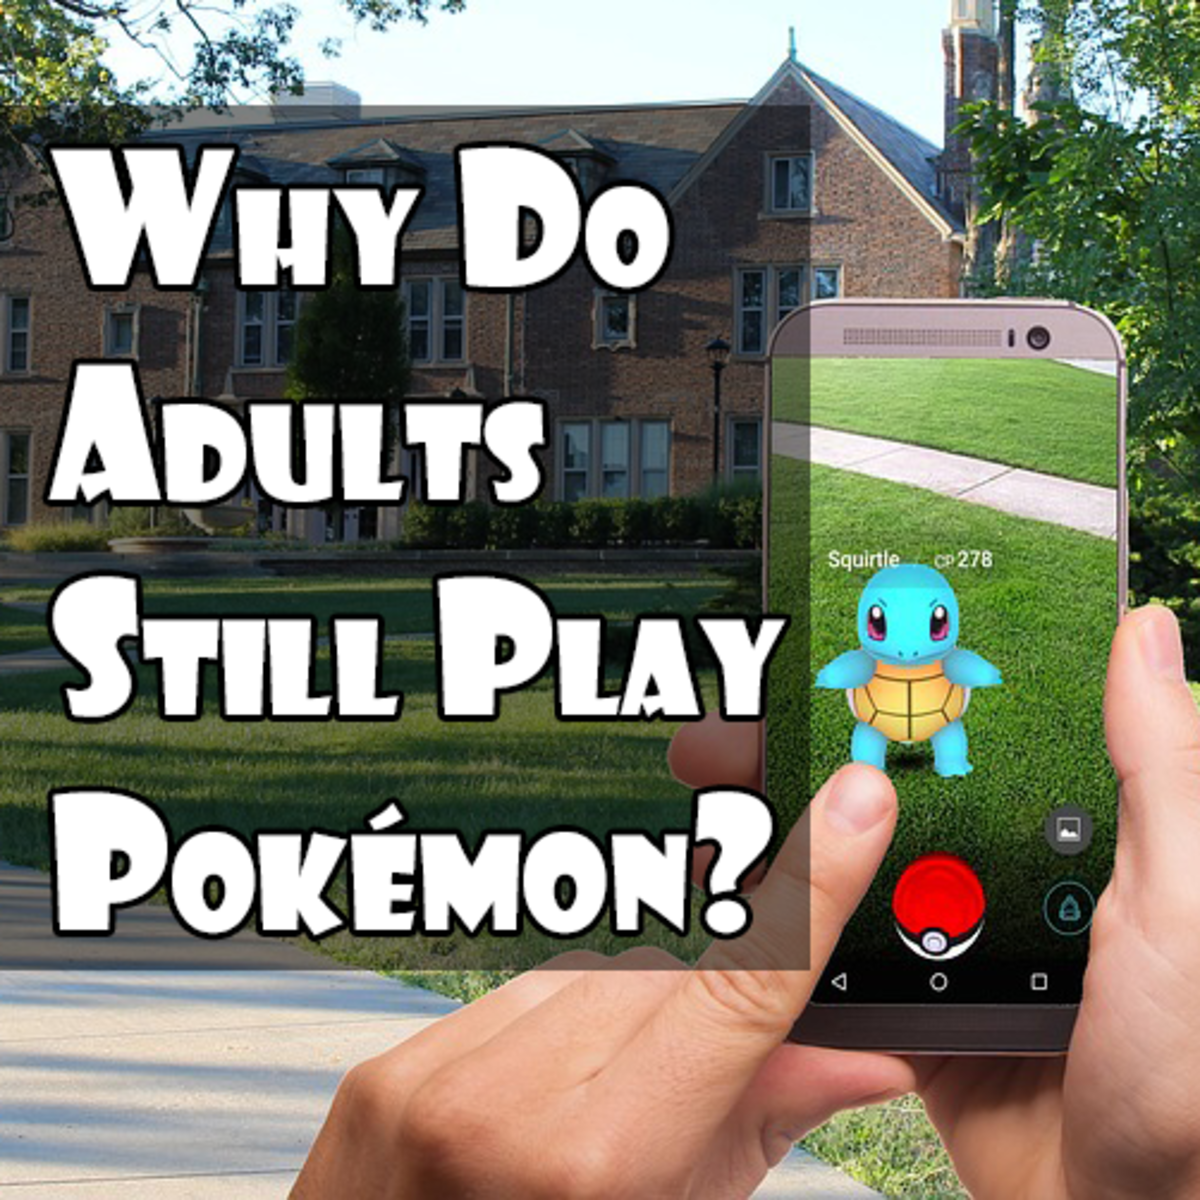 Why Do Adults Still Play Pokémon?